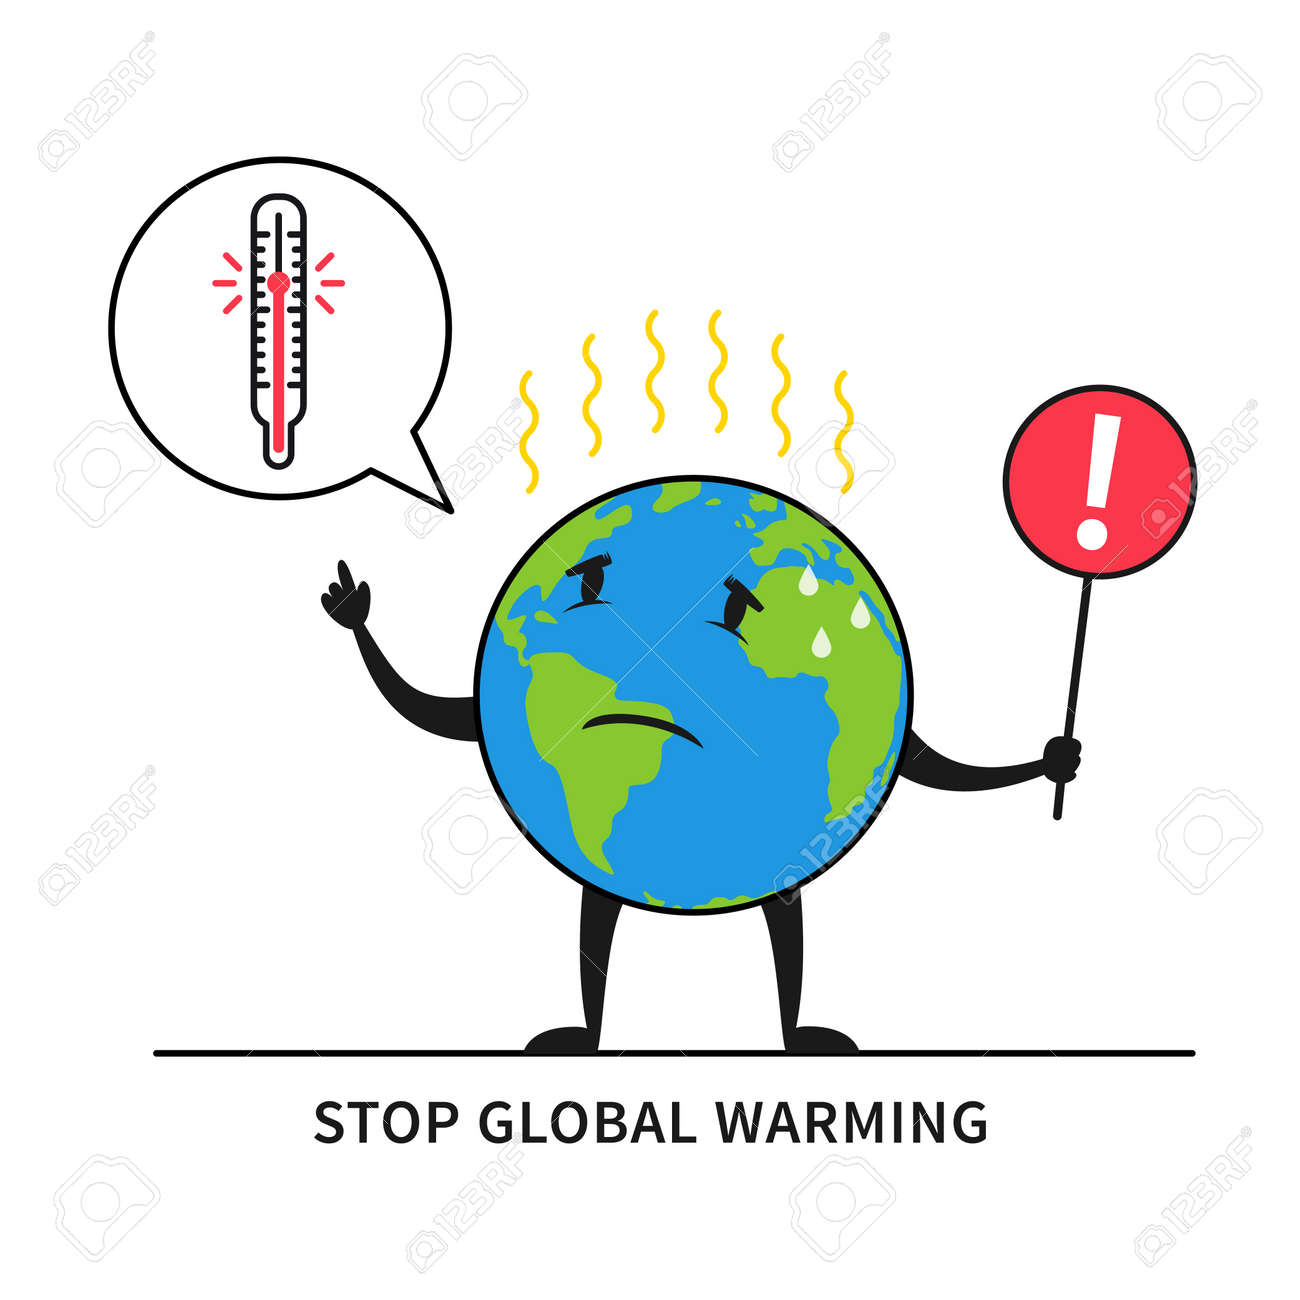 Stop Global Warming Vector Illustration Planet Earth Feels Hot